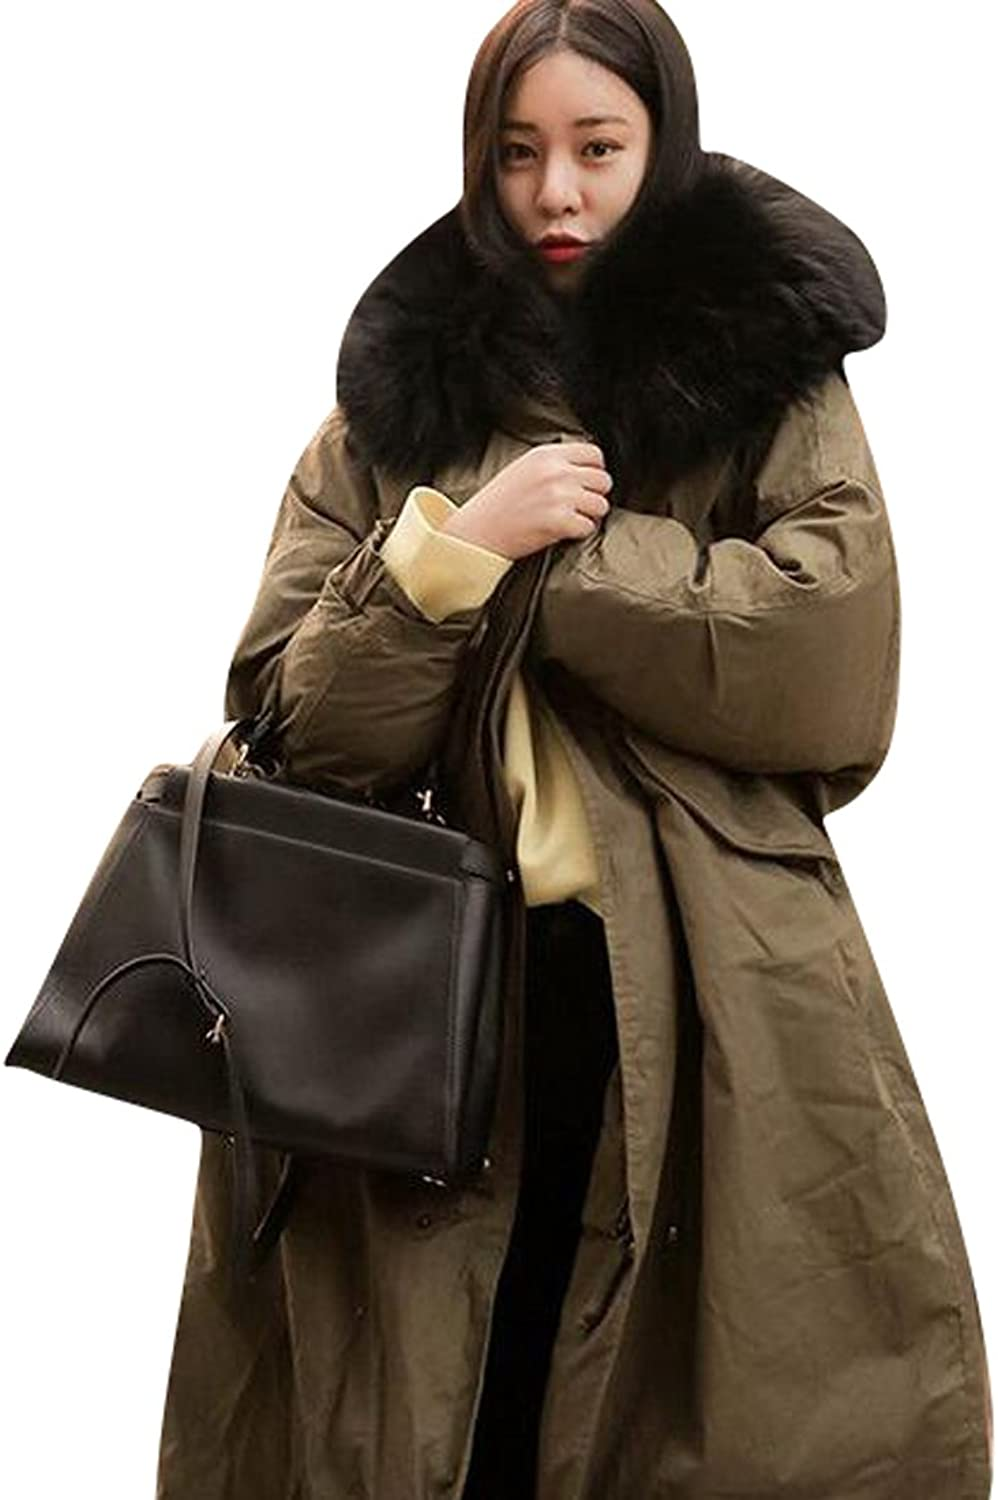 OberoraWomen Winter Oversized Faux Fur Hooded Long Quilted Jacket Coat Parka